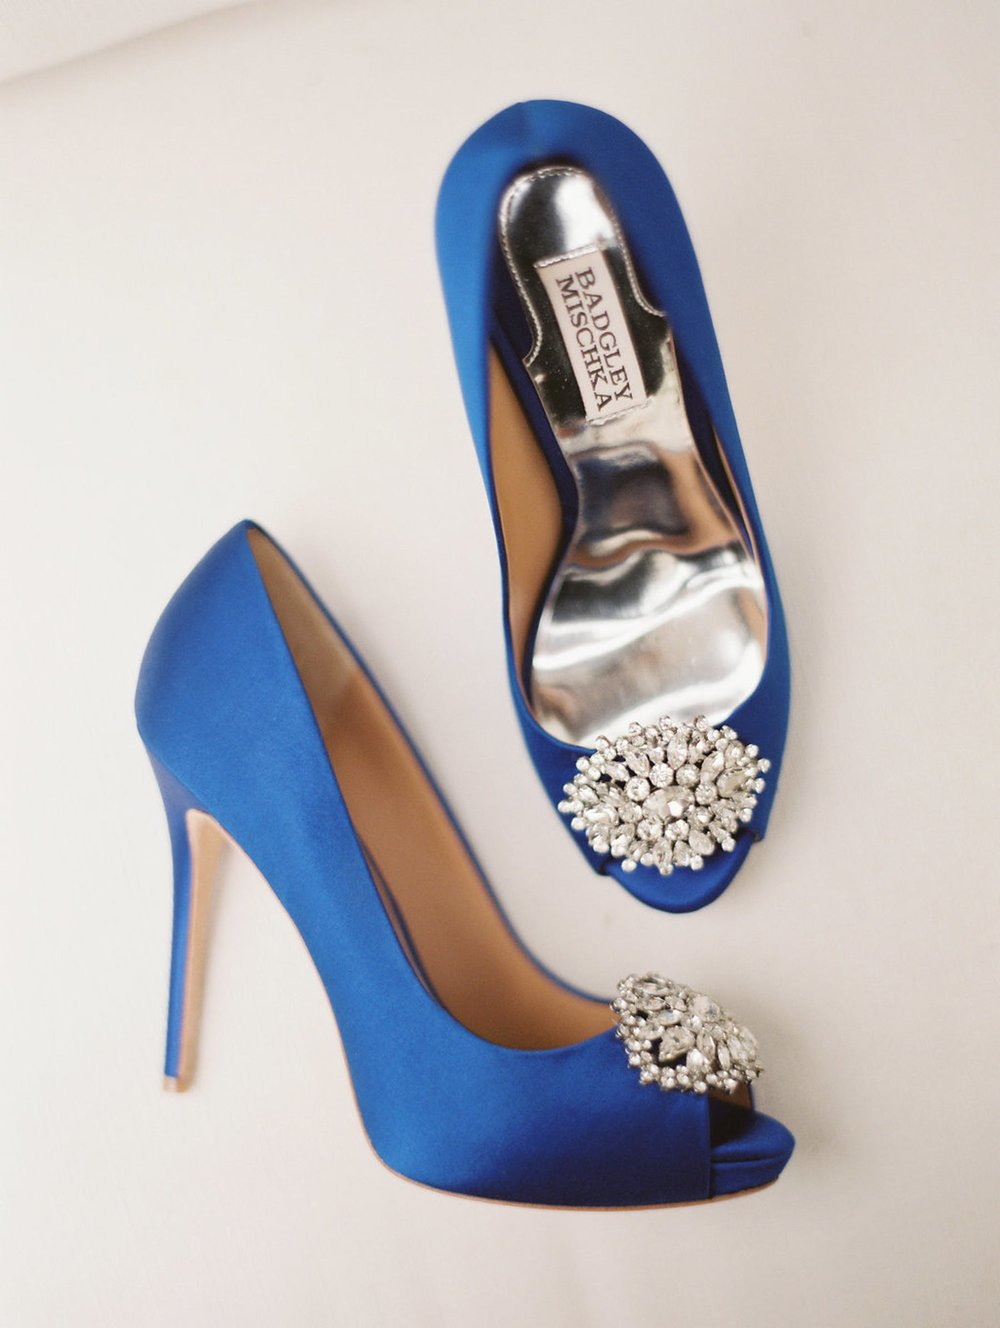 www.santabarbarawedding.com | El Encanto | Coco Rose Design | This Modern Romance | Bride's Shoes